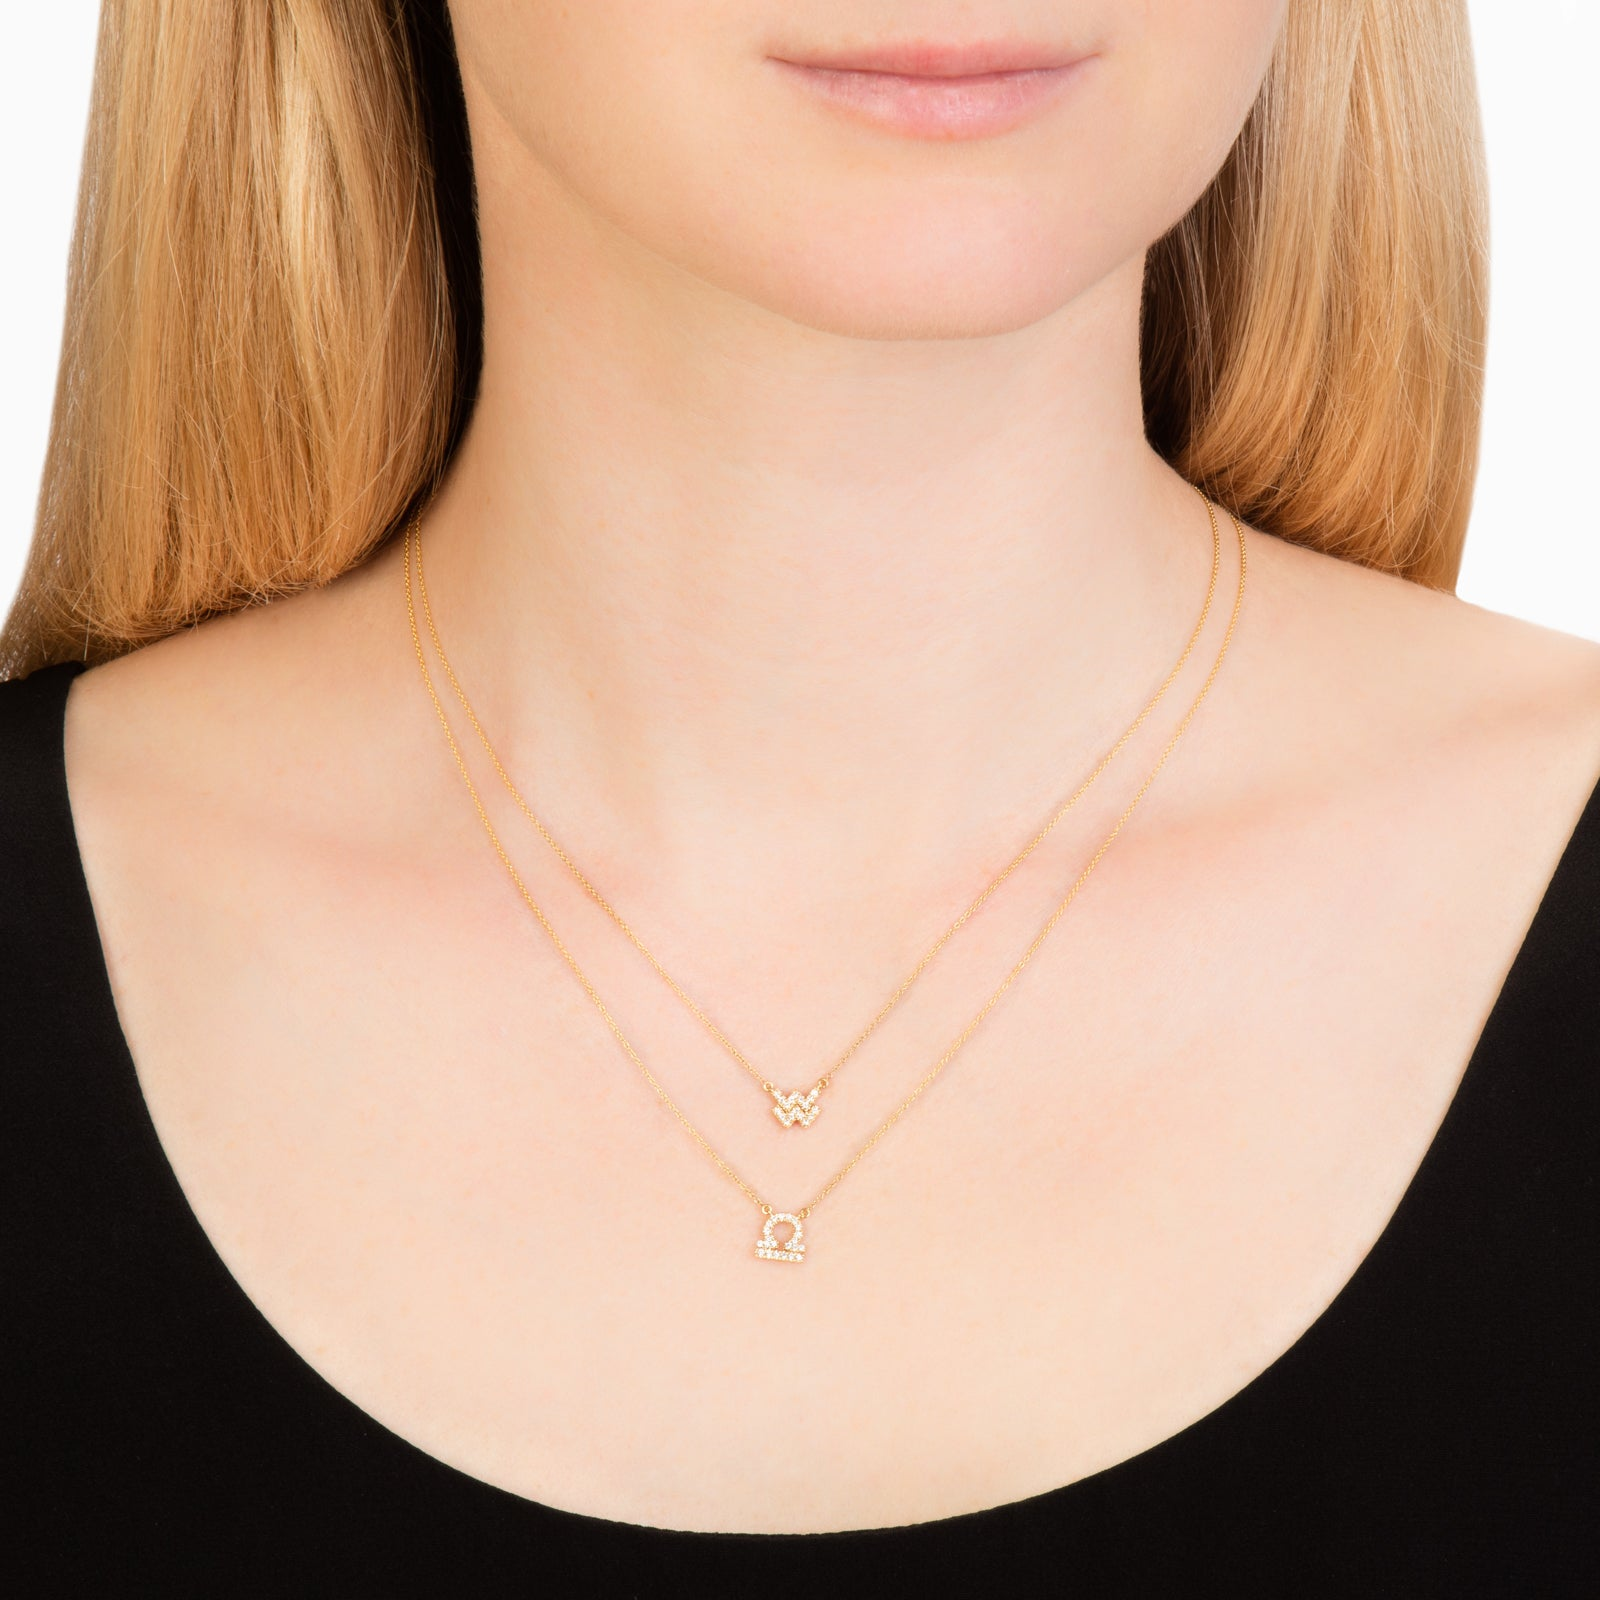 Petit Pisces Necklace - Engelbert - Necklaces | Broken English Jewelry